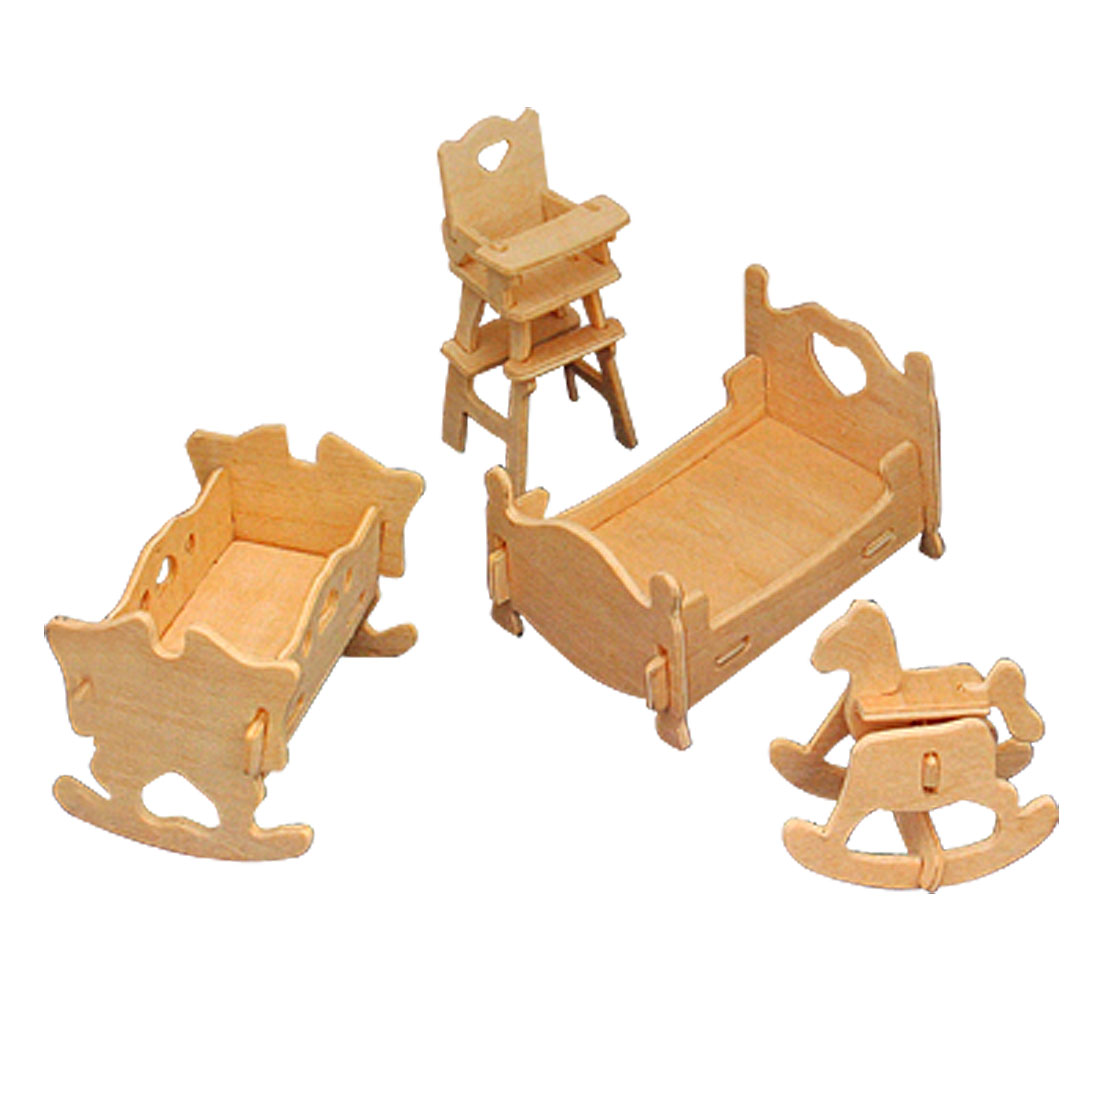 Toys - Wooden Puzzle Toy Models Bedroom